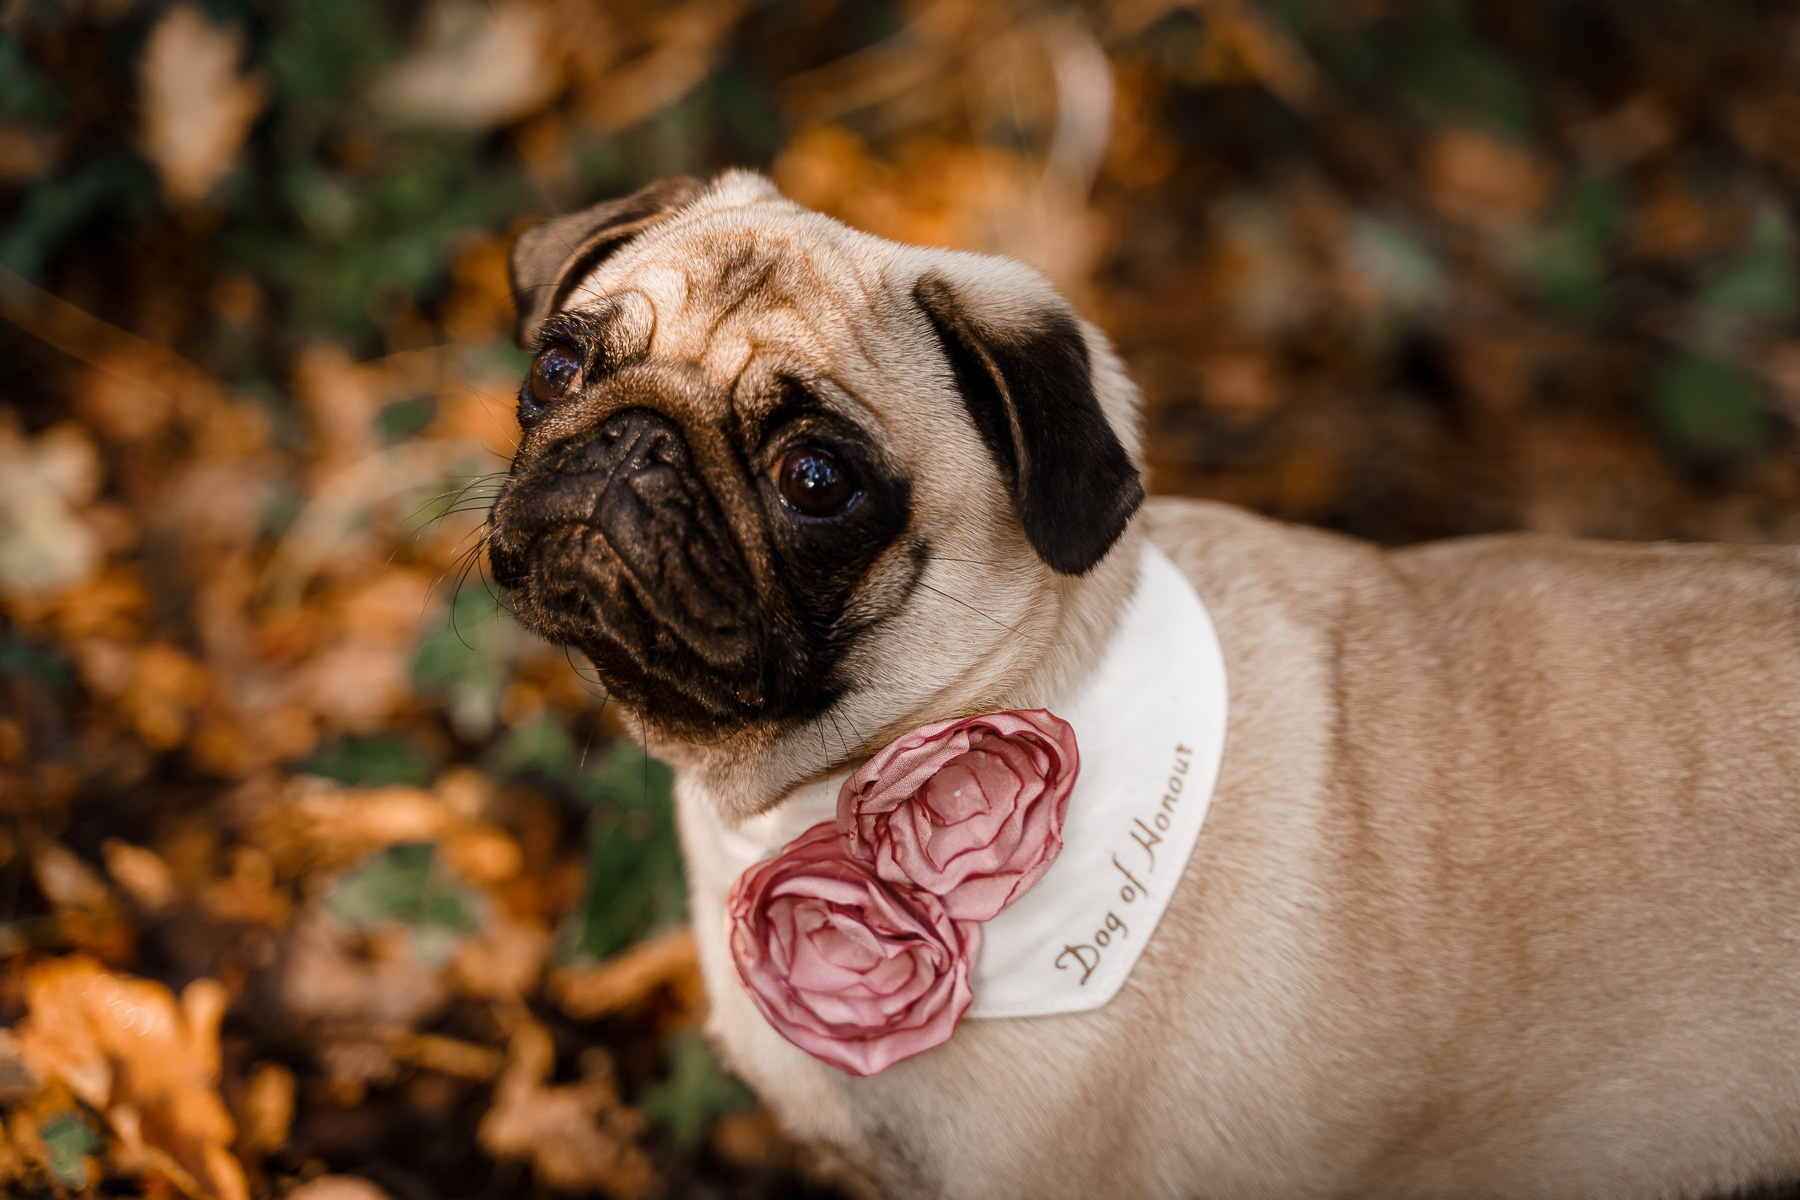 dog friendly wedding- dogs at weddings- katherine and her camera- dog wedding accessories-unconventional wedding- wedding planning advice- pets at weddings- dog of honour